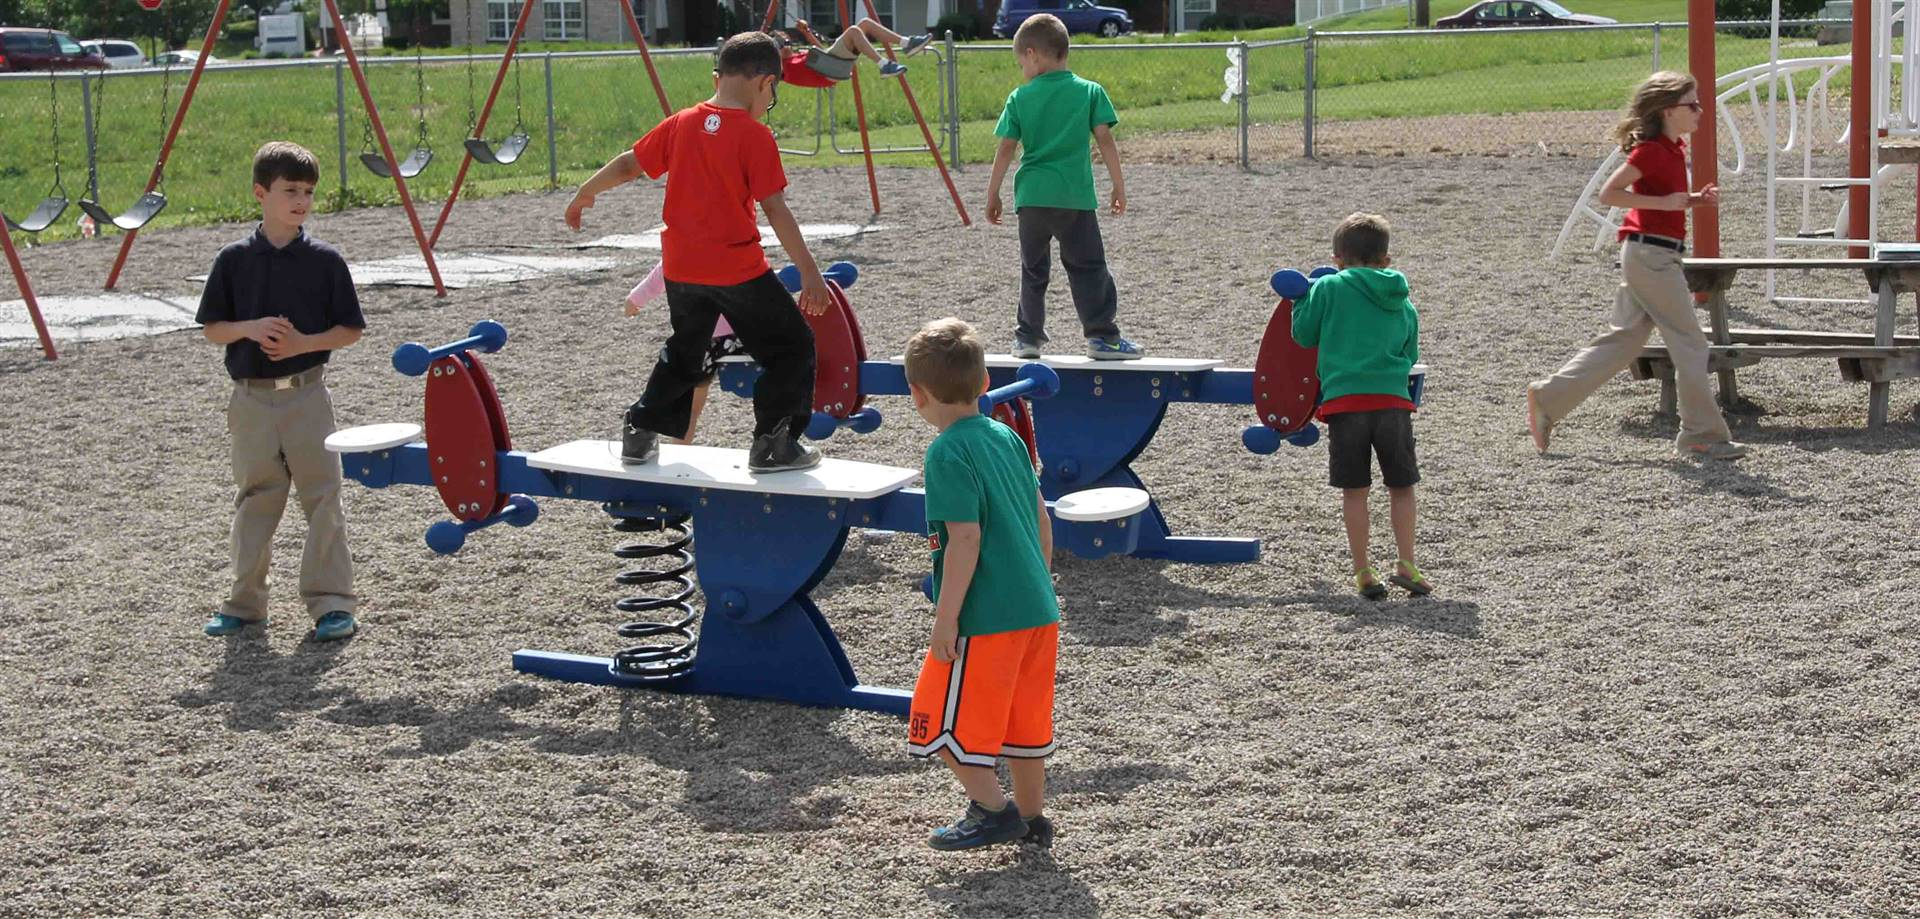 Students Playing on New Equipment